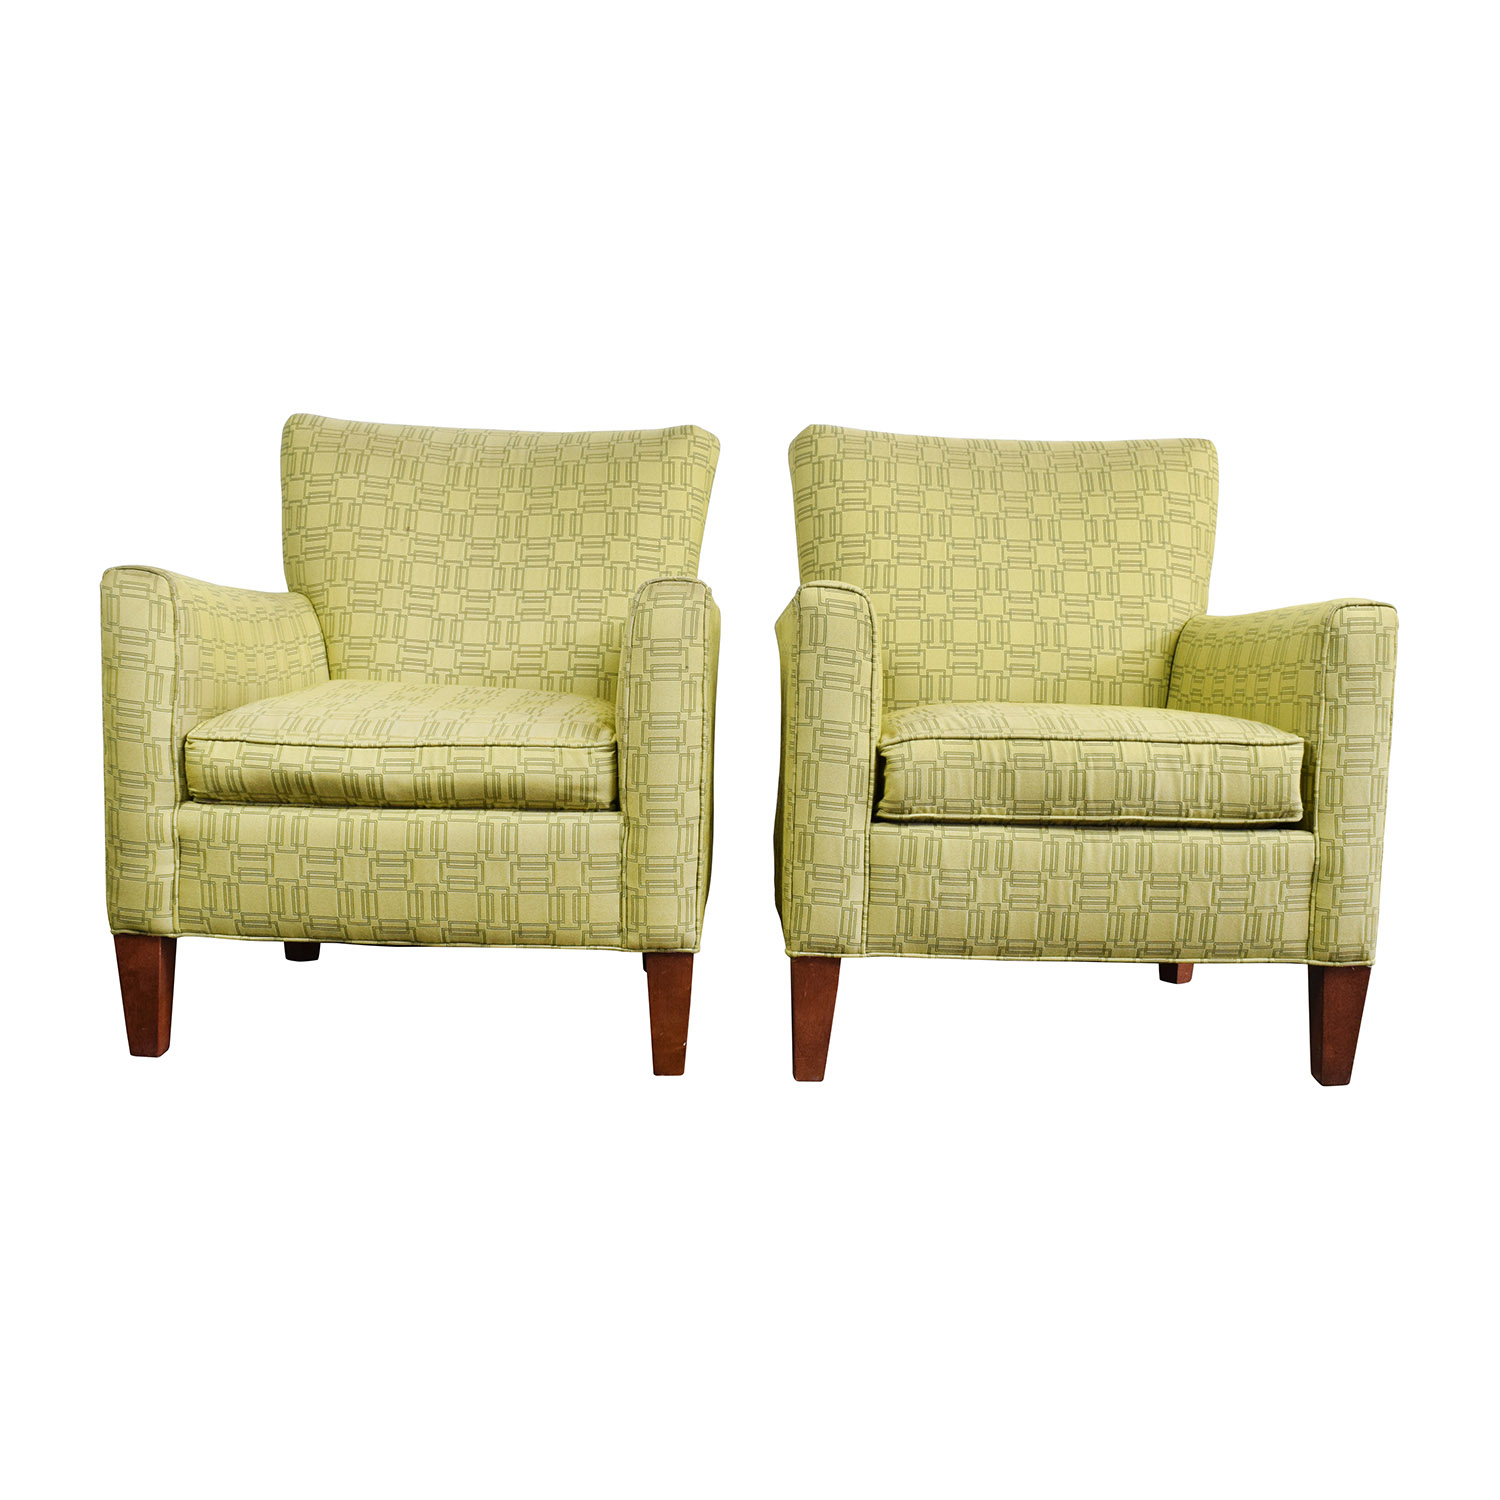 90 OFF Ethan Allen Ethan Allen Green Upholstered Accent  : used ethan allen green upholstered accent chairs from furnishare.com size 1500 x 1500 jpeg 247kB